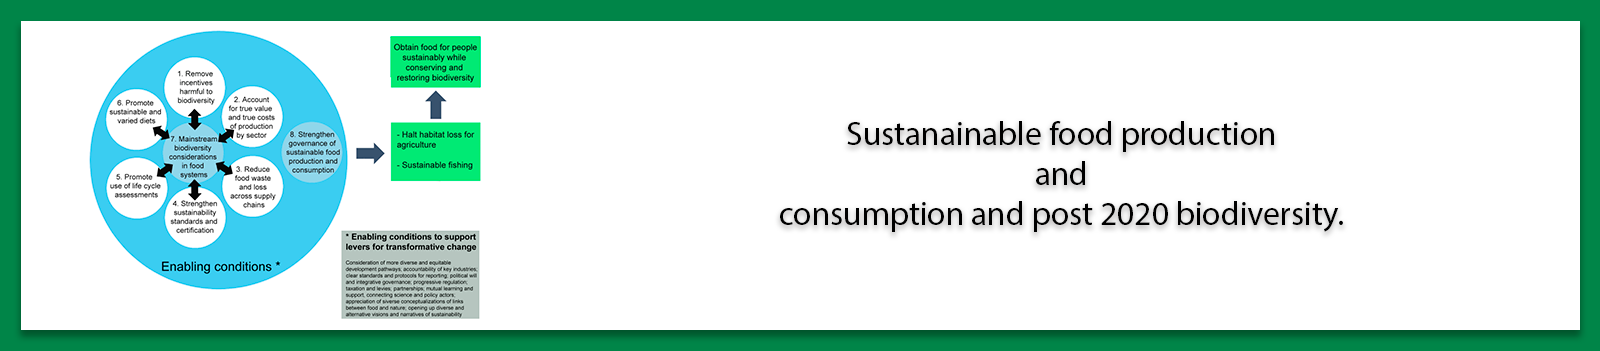 Sustanainable food production and consumption and post 2020 biodiversity.